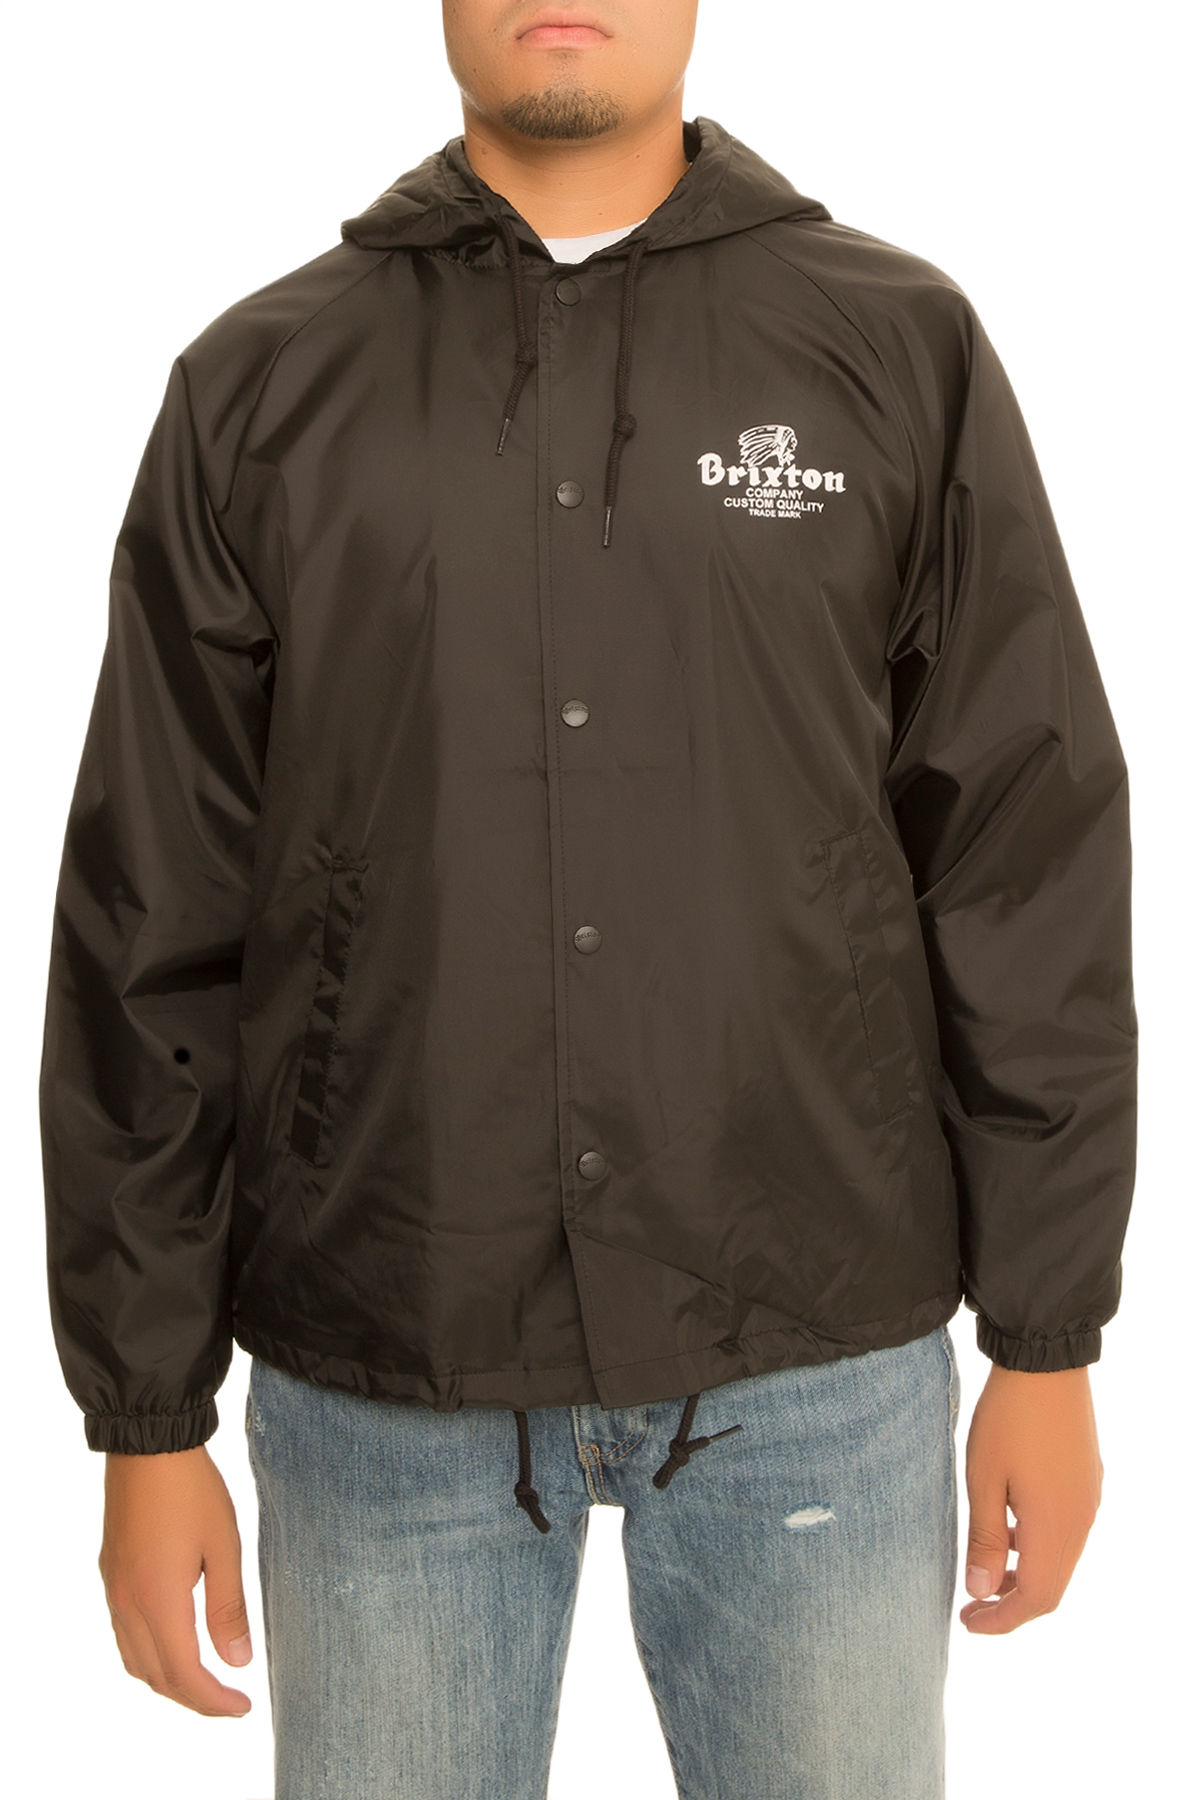 Image of The Tanka Jacket in Black